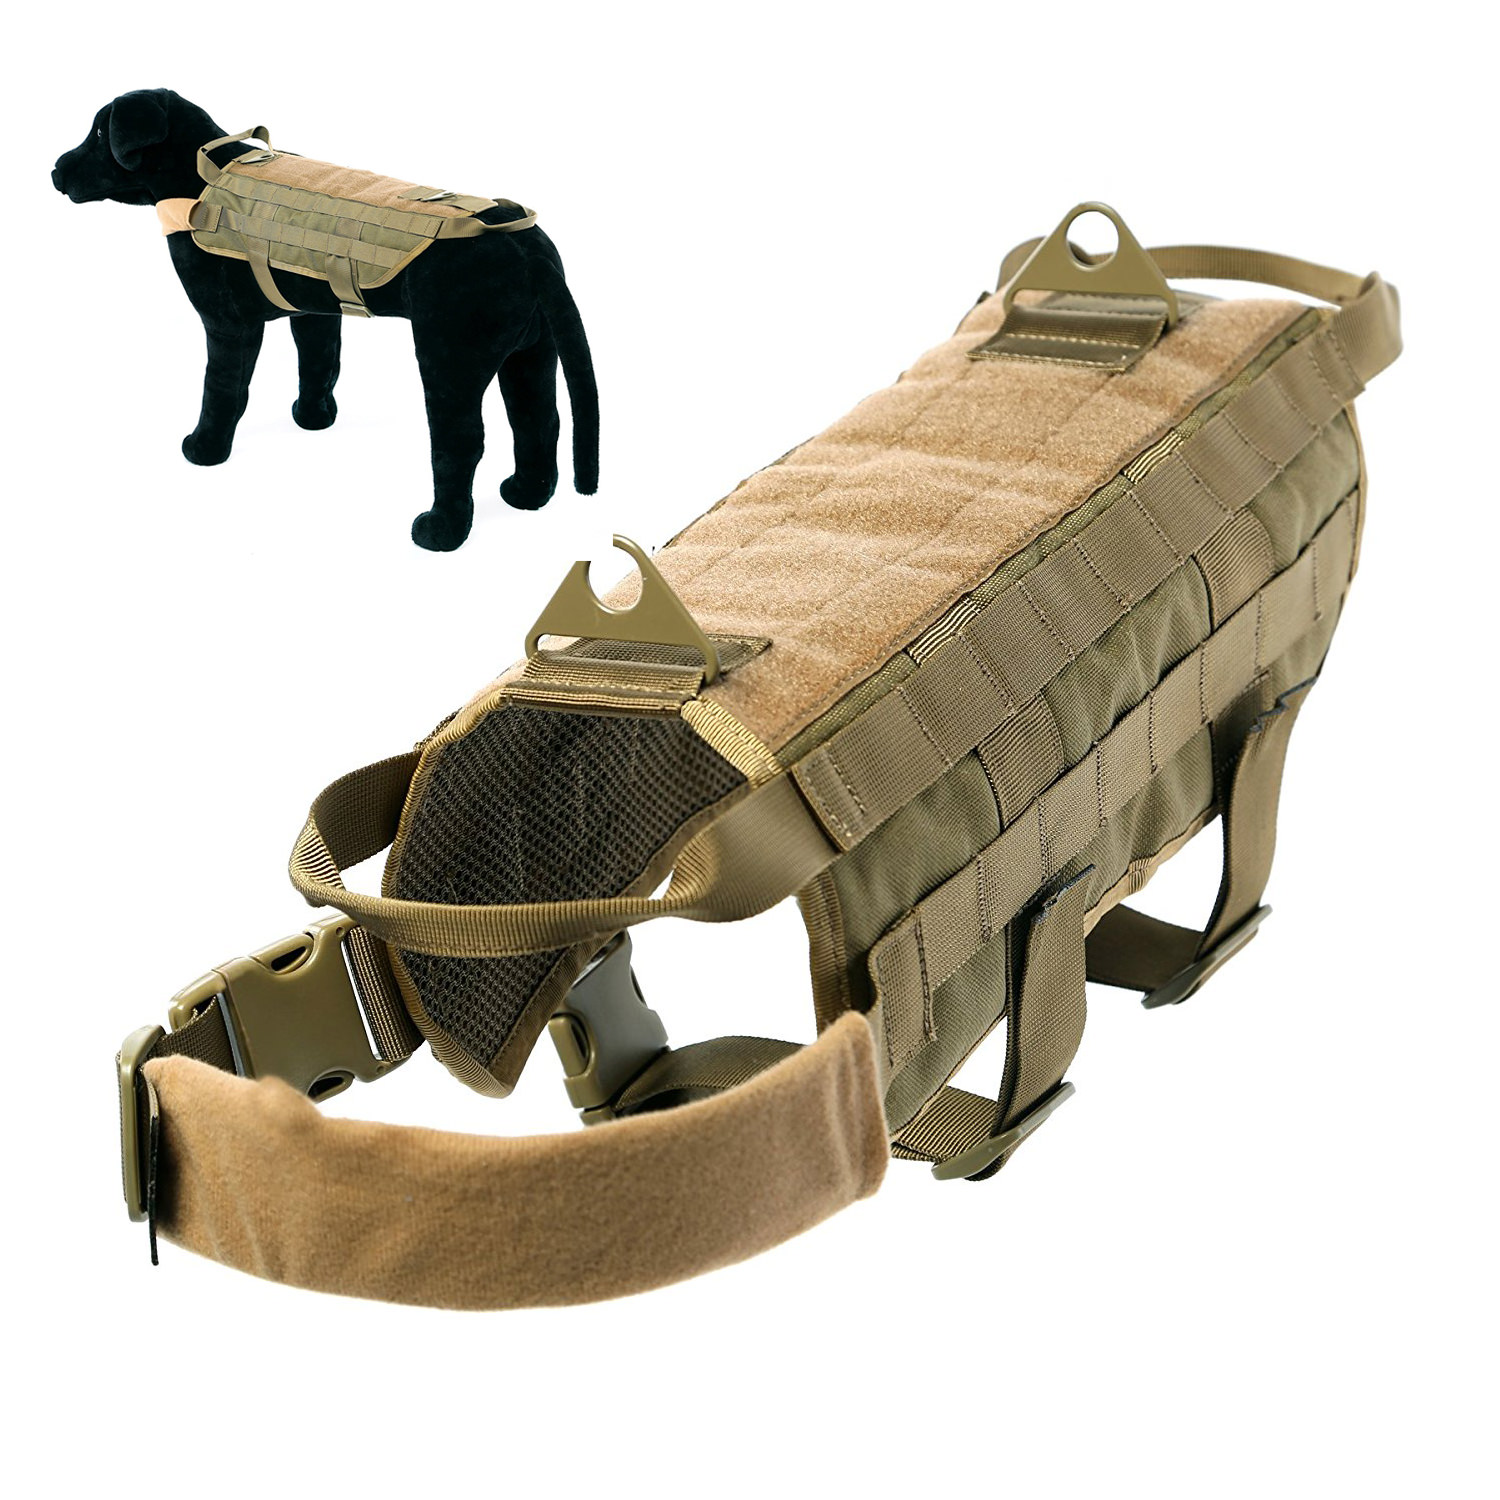 Tactical Dog Harness Vest Nylon Training Military Patrol K9 Service Dog Dog Vest Jacket with Handle For Small Medium Large Dogs